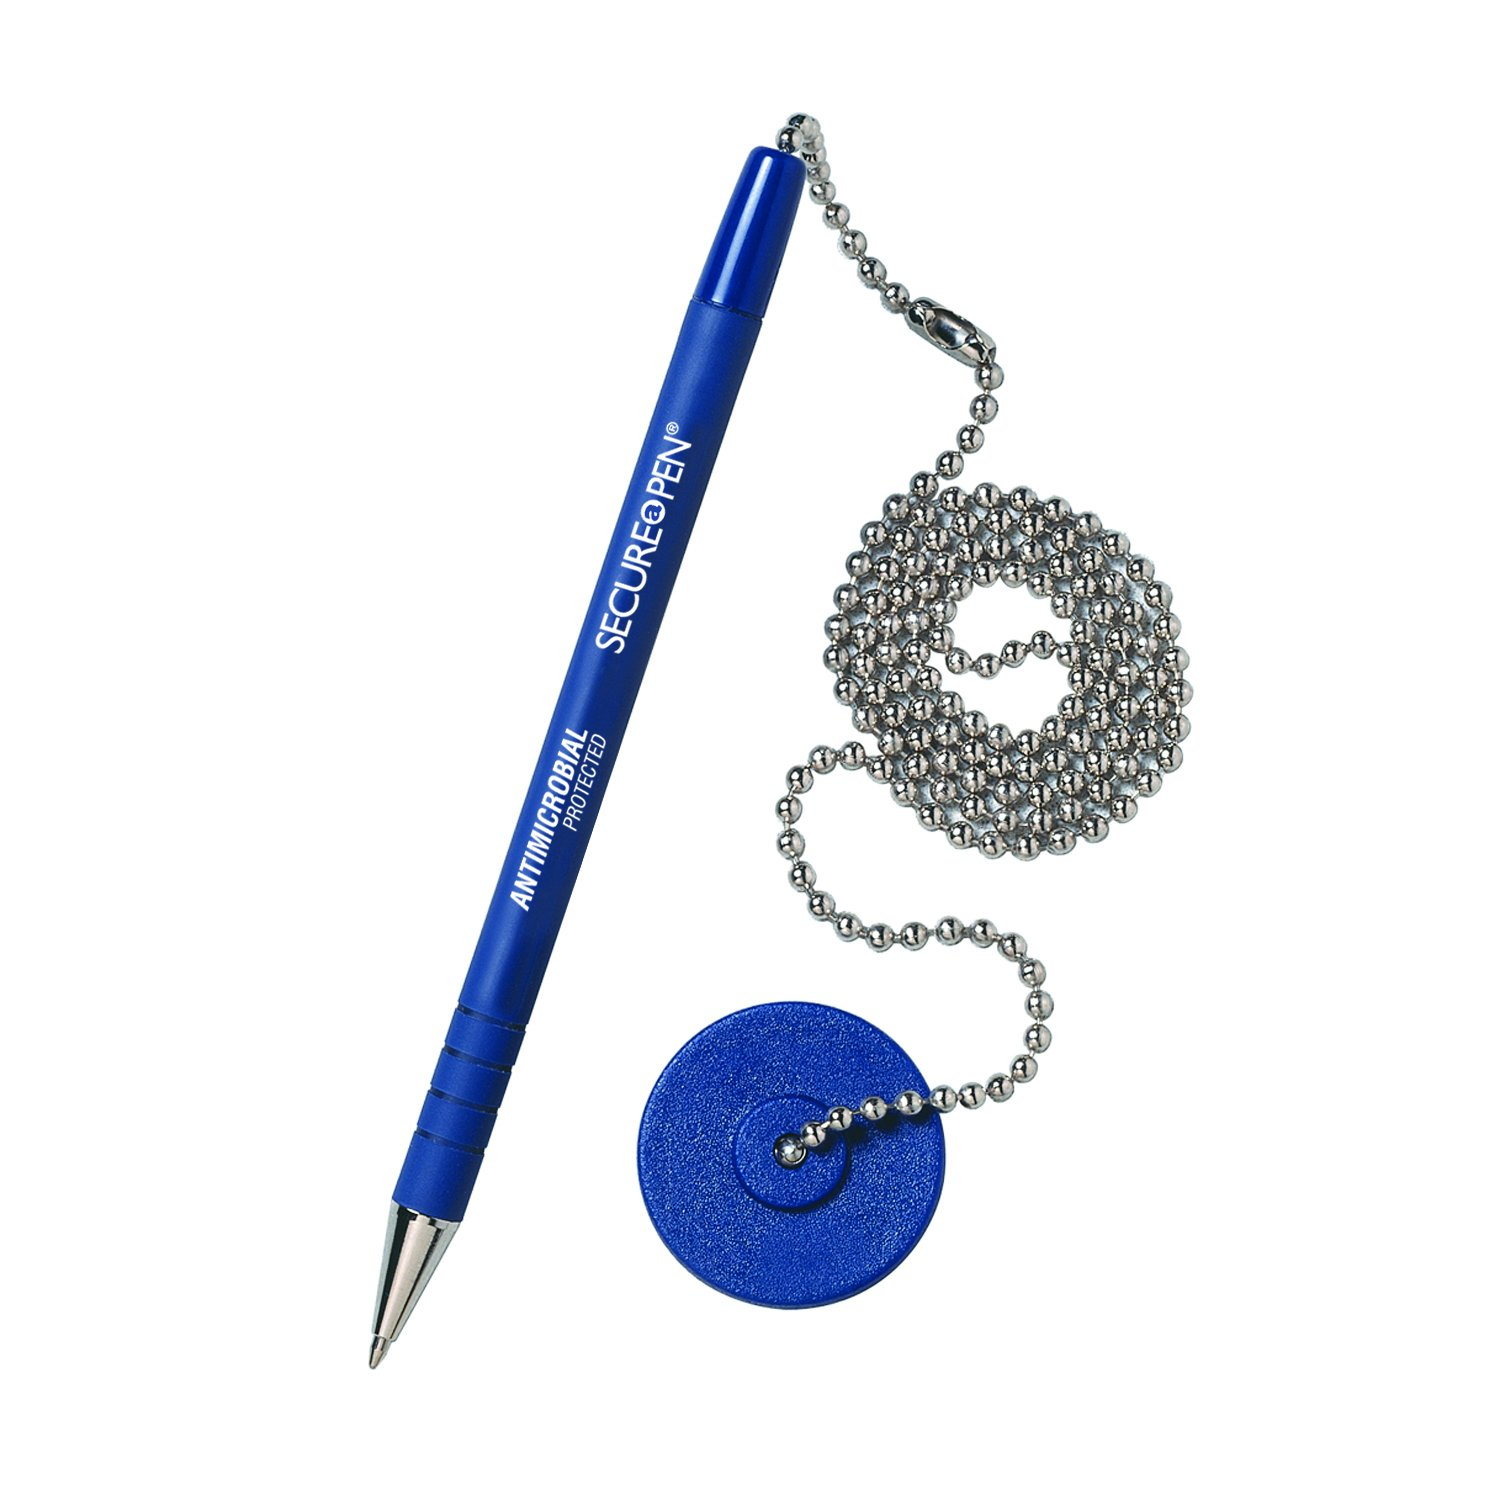 STEELMASTER Secure-A-Pen Counter Pen with Adhesive Base, Blue with Blue Ink, Pack of 12 (28908) by STEELMASTER (Image #1)